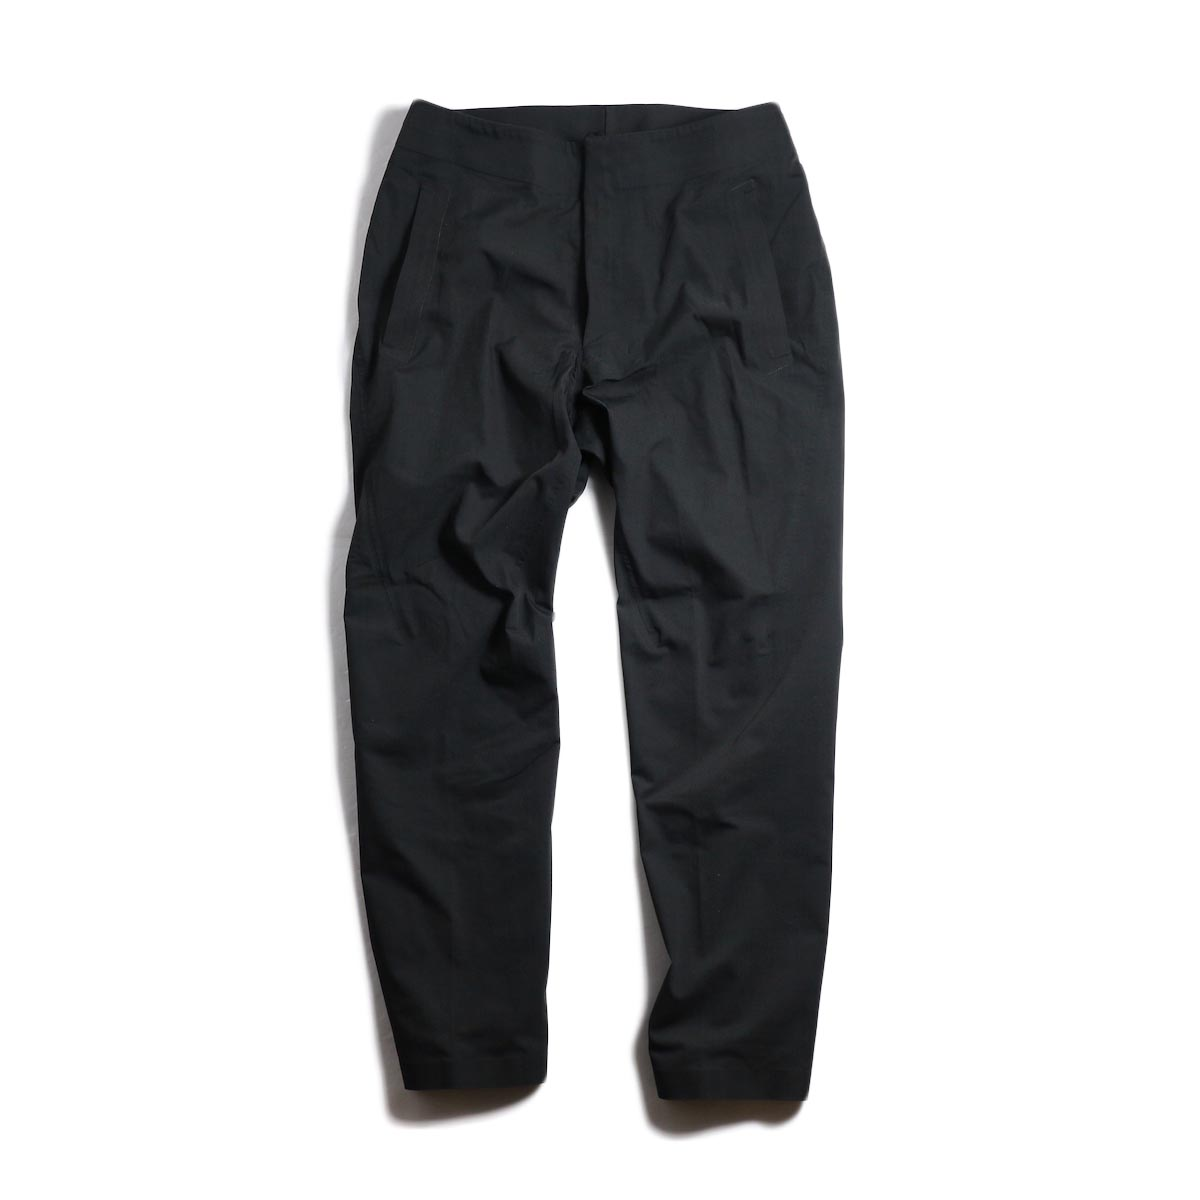 DESCENTE ALLTERAIN / Boa Long Pants Tapered Fit -Black